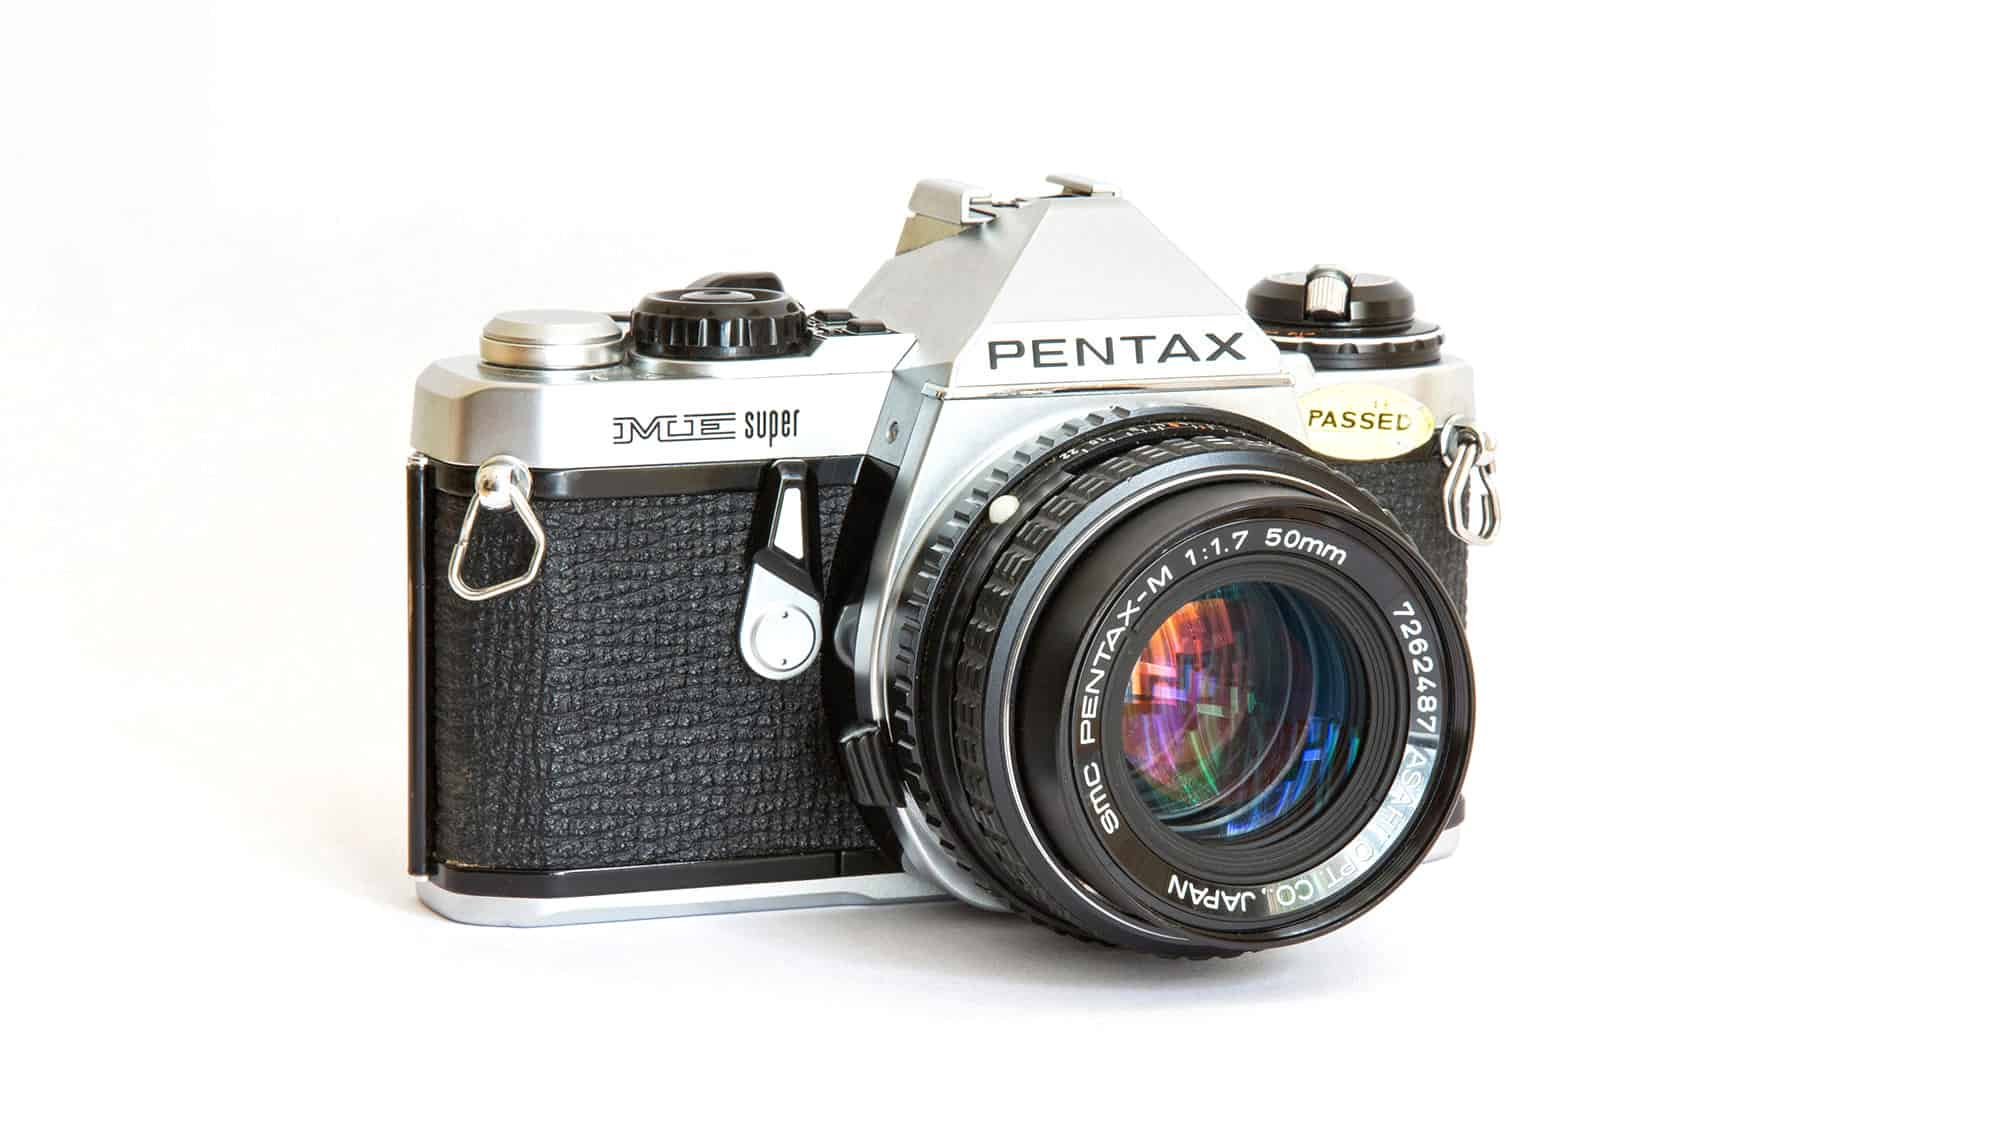 Pentax ME Super SLR 35mm camera body with a Pentax-M 50mm f1.7 lens.